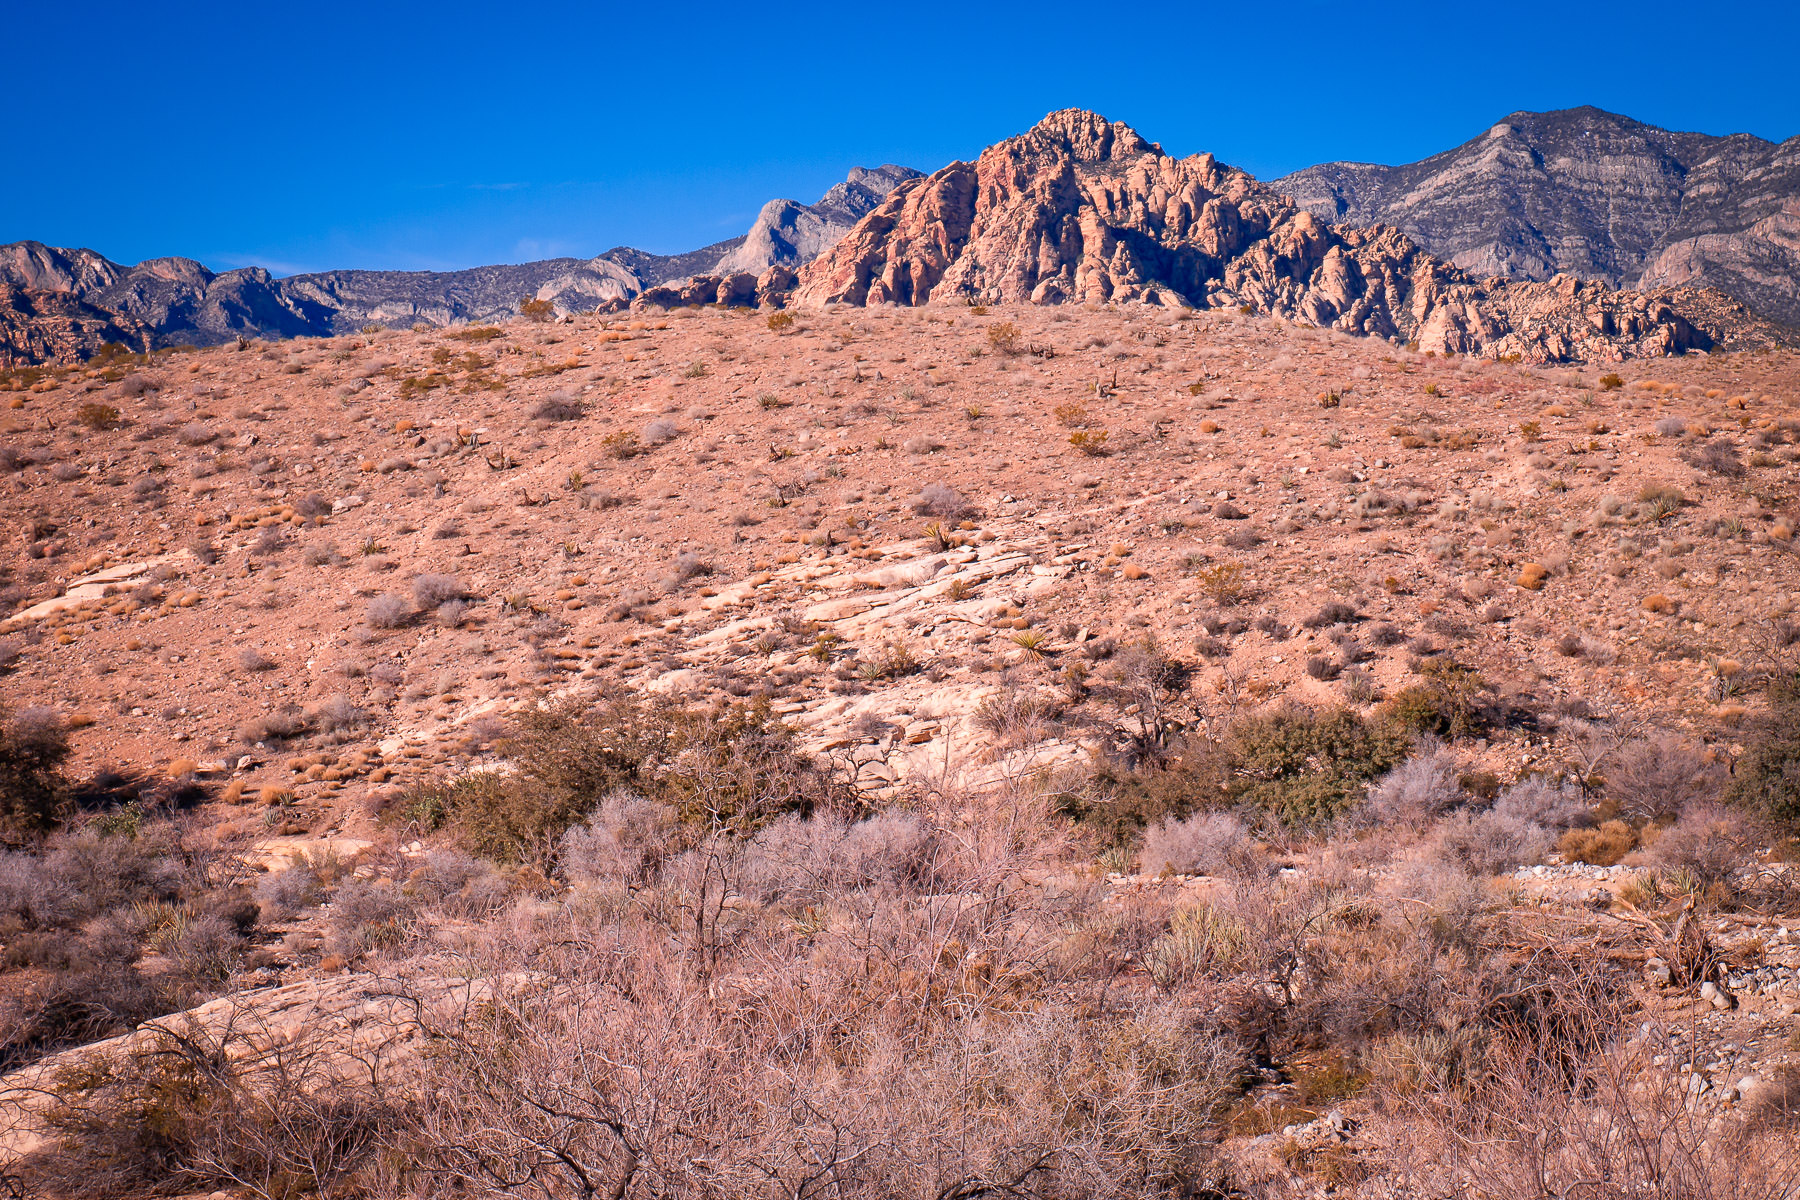 An outcropping of rocks rises in the distance among the dry desert landscape of Red Rock Canyon, Nevada.